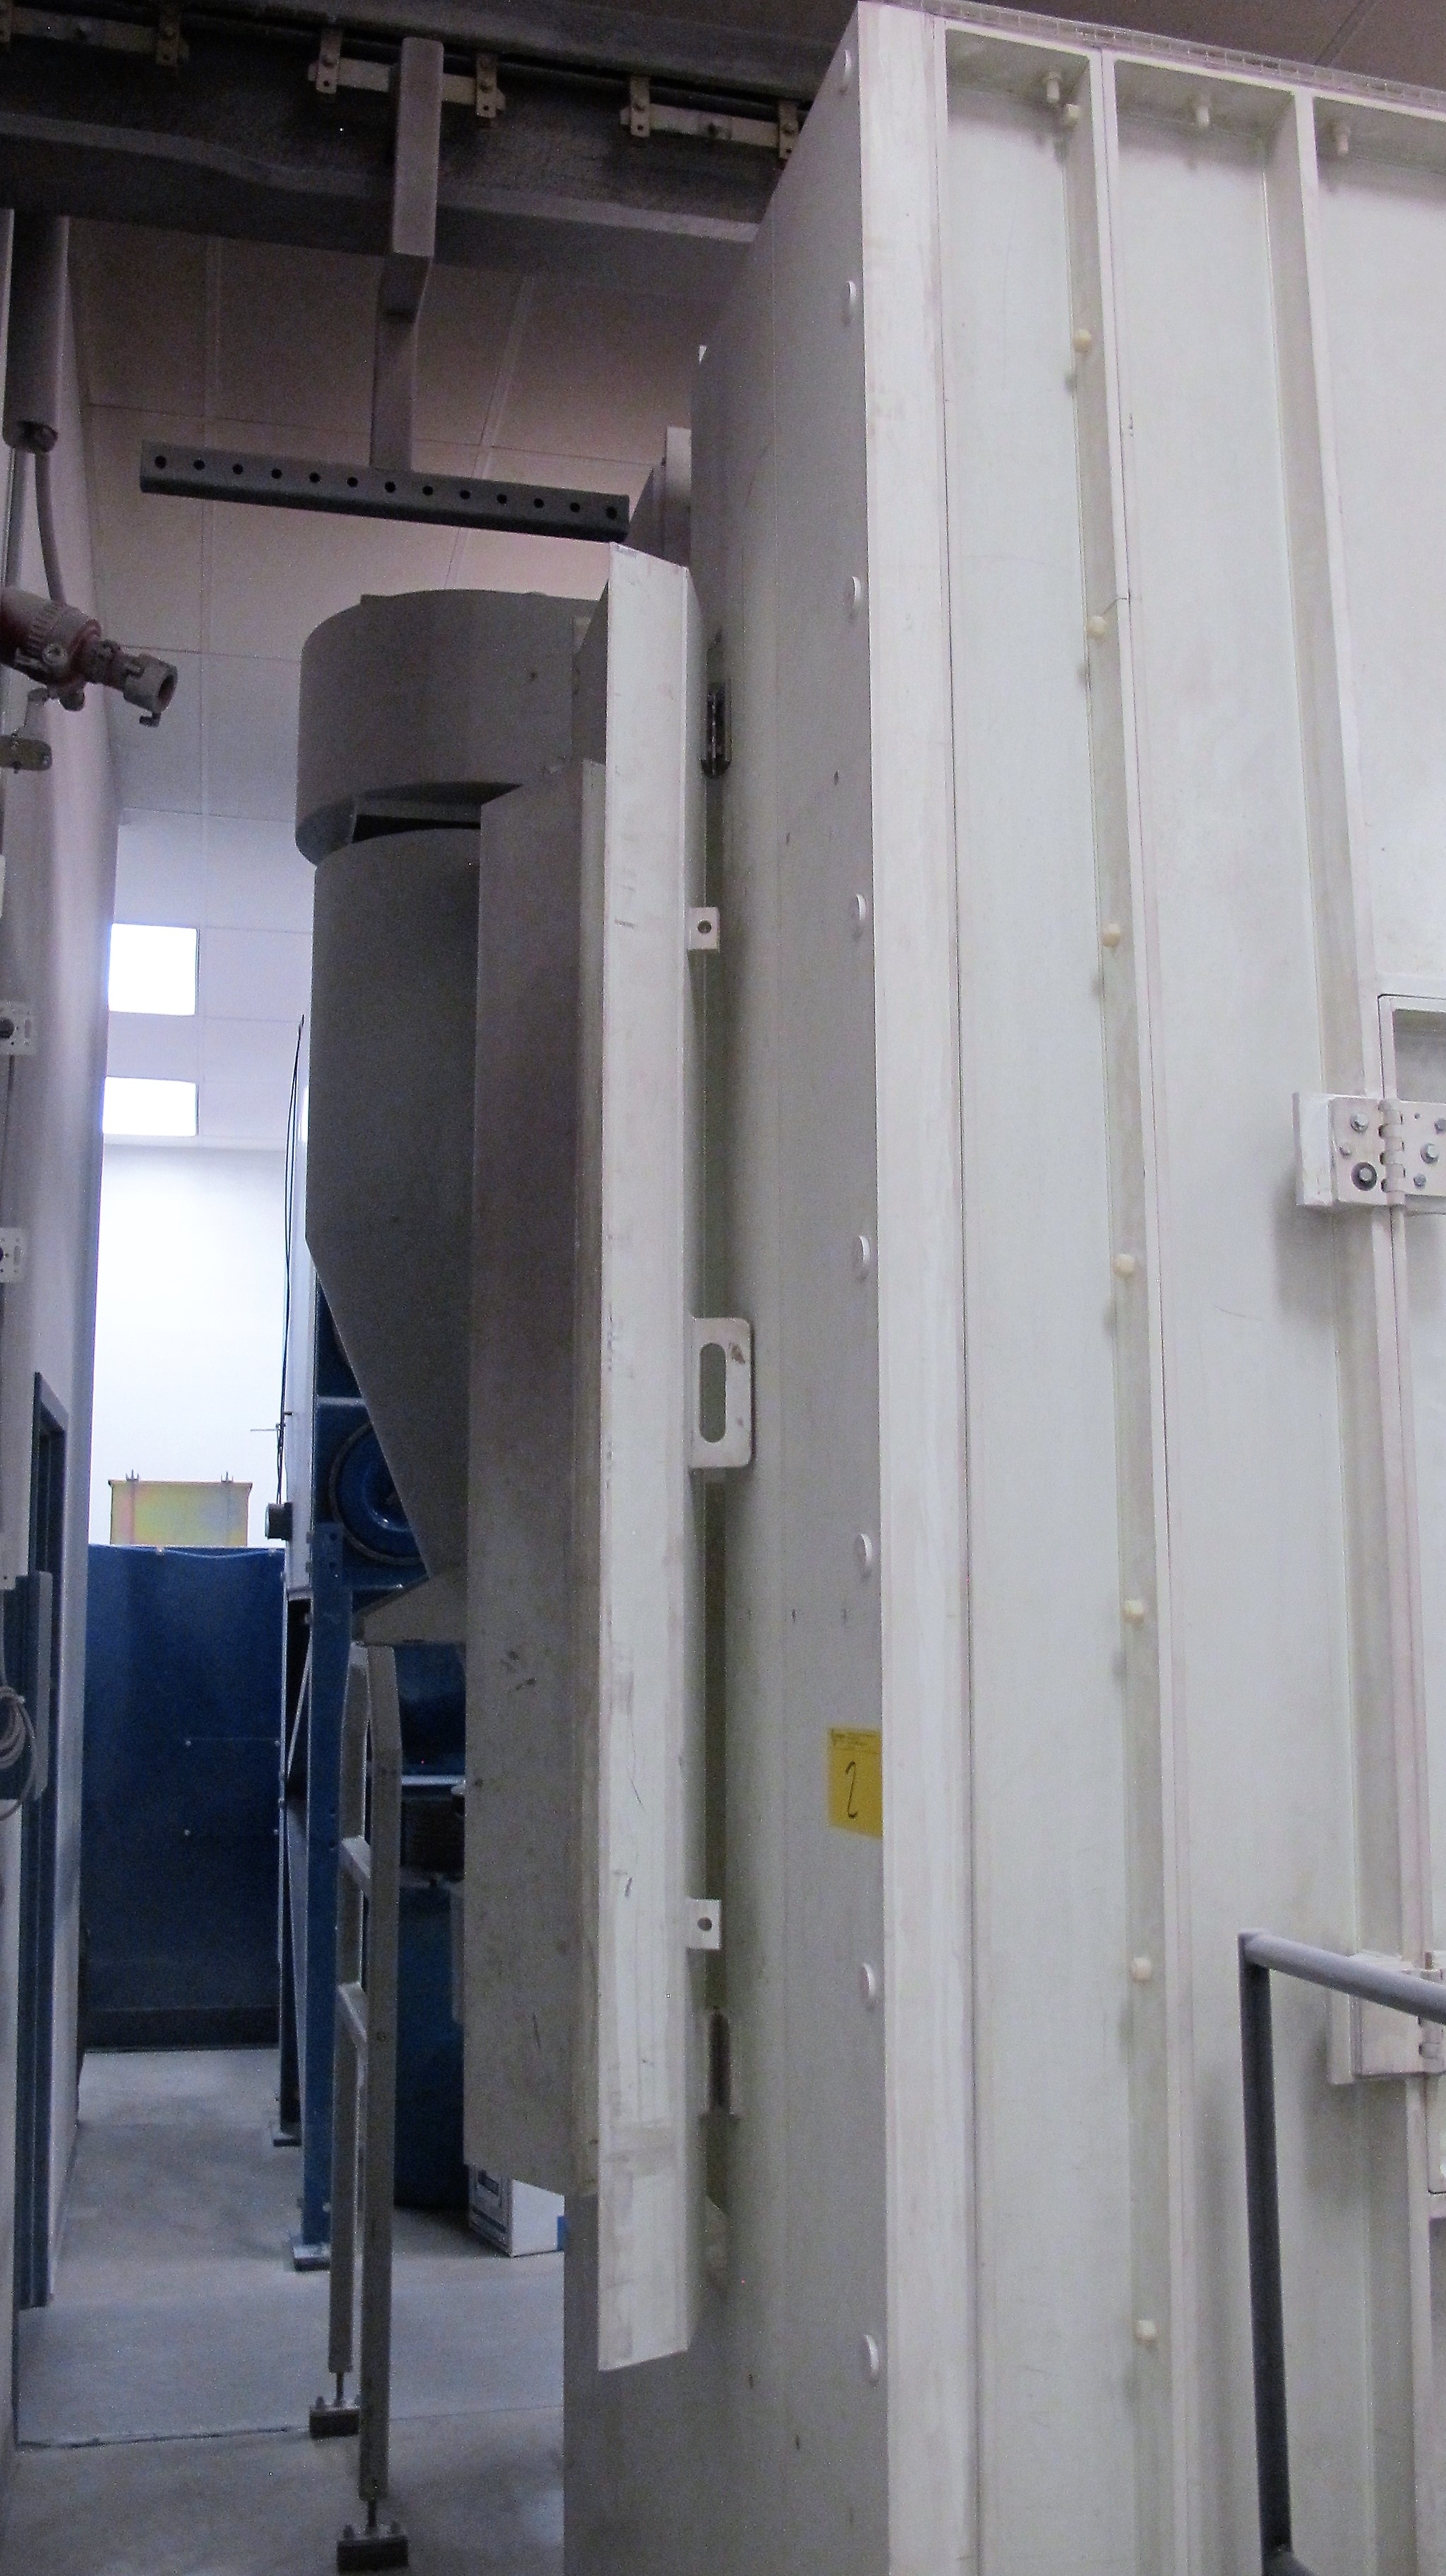 Lot 2 - 2001 NORDSON CK5400 FLOW-THROUGH ELECTROSTATIC POWDER COATING PAINT BOOTH, S/N E-00012123 APPROX.